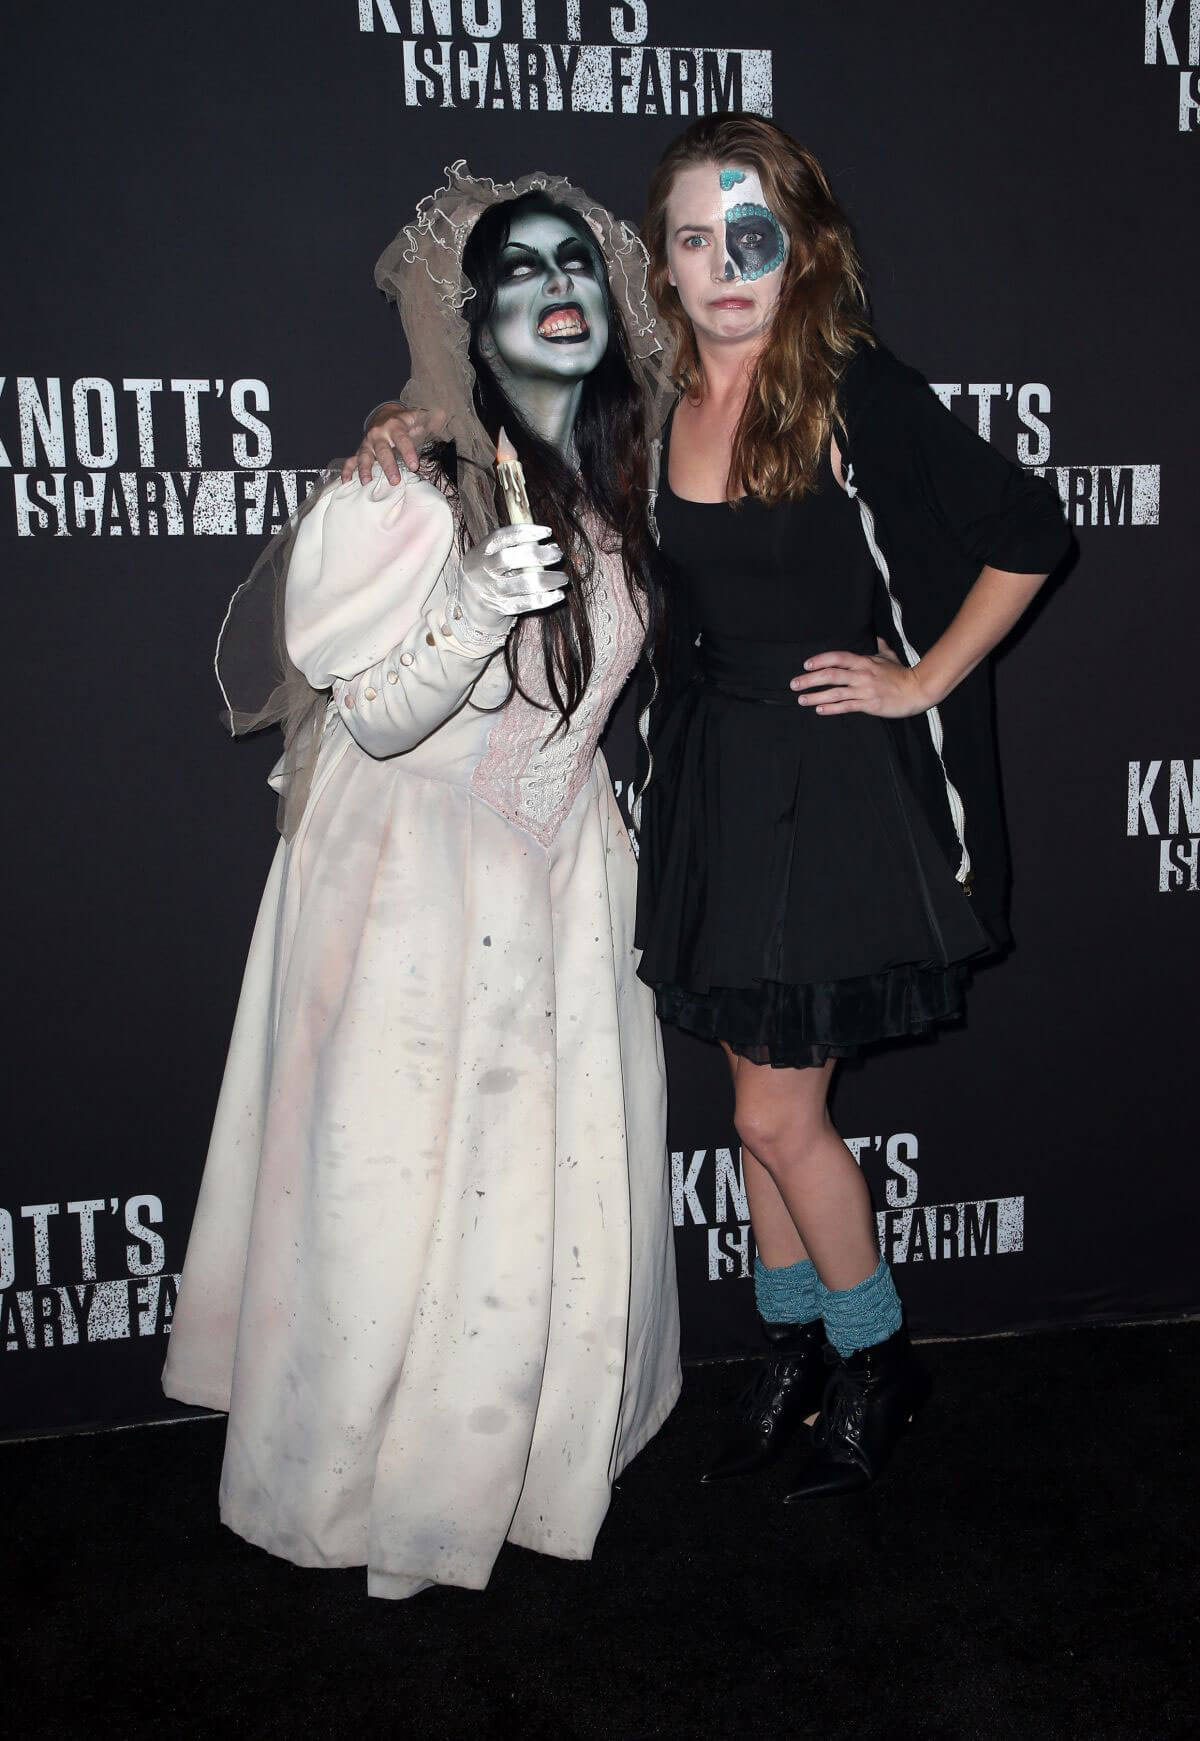 Britt Robertson Stills at Knott's Scary Farm Celebrity Night in Buena Park